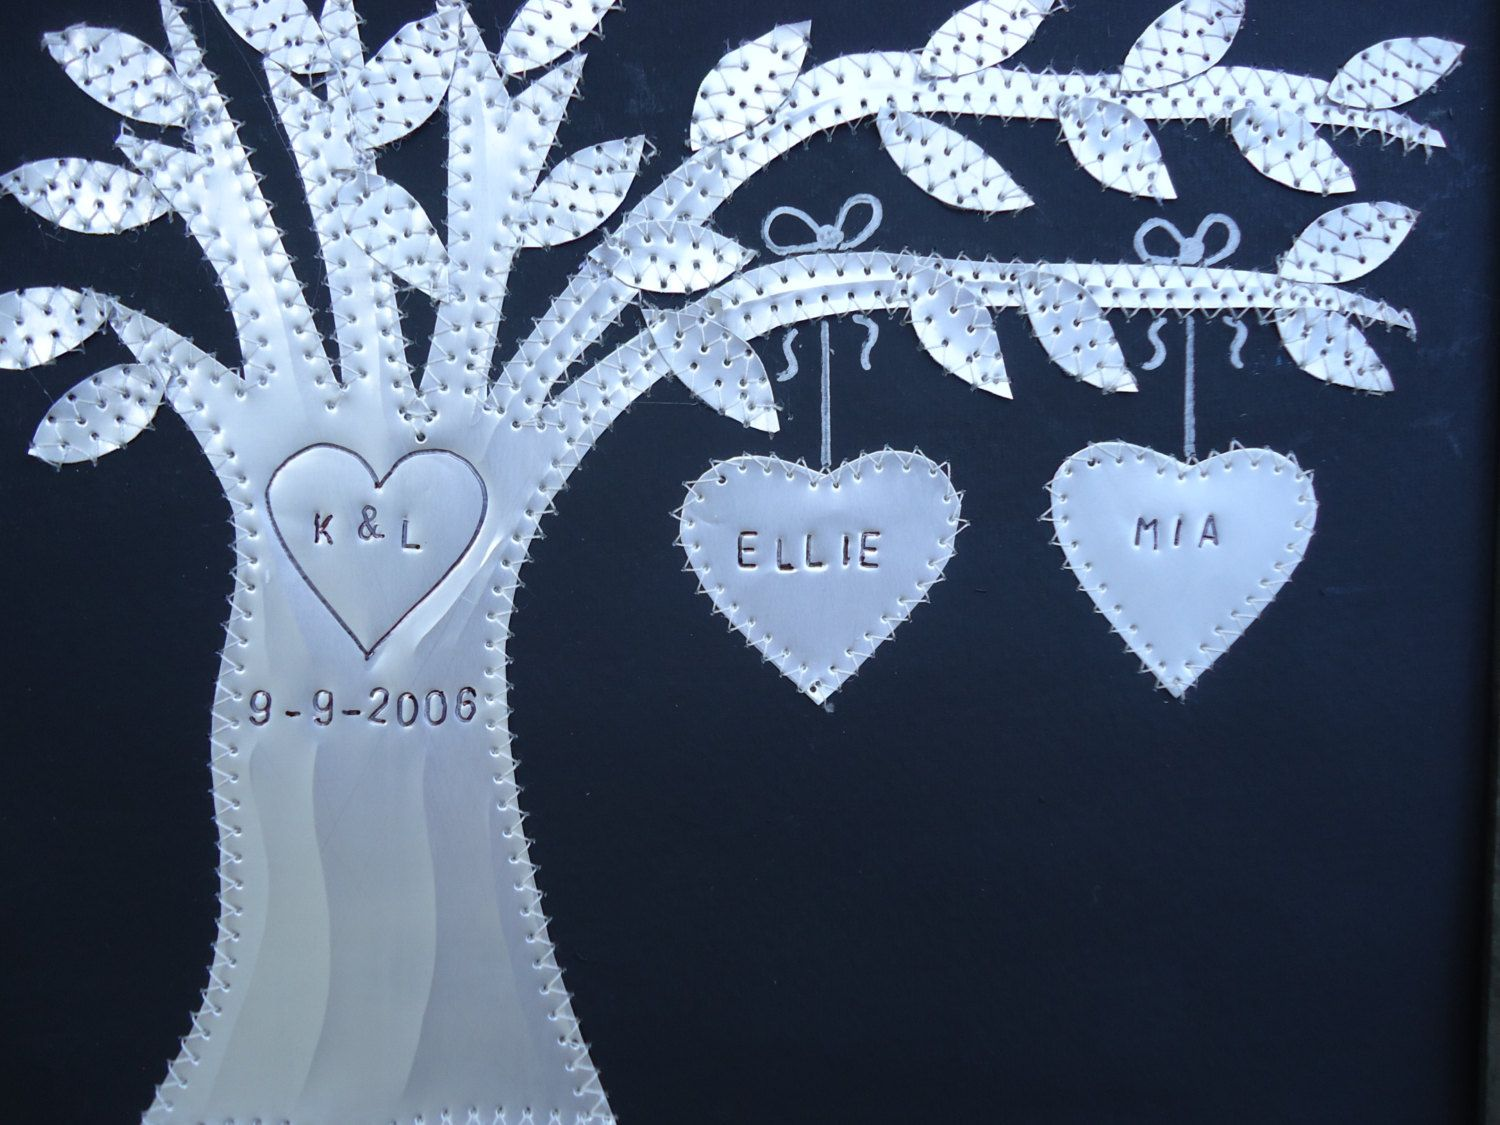 Tin anniversary gift year wedding gift hearts family tree